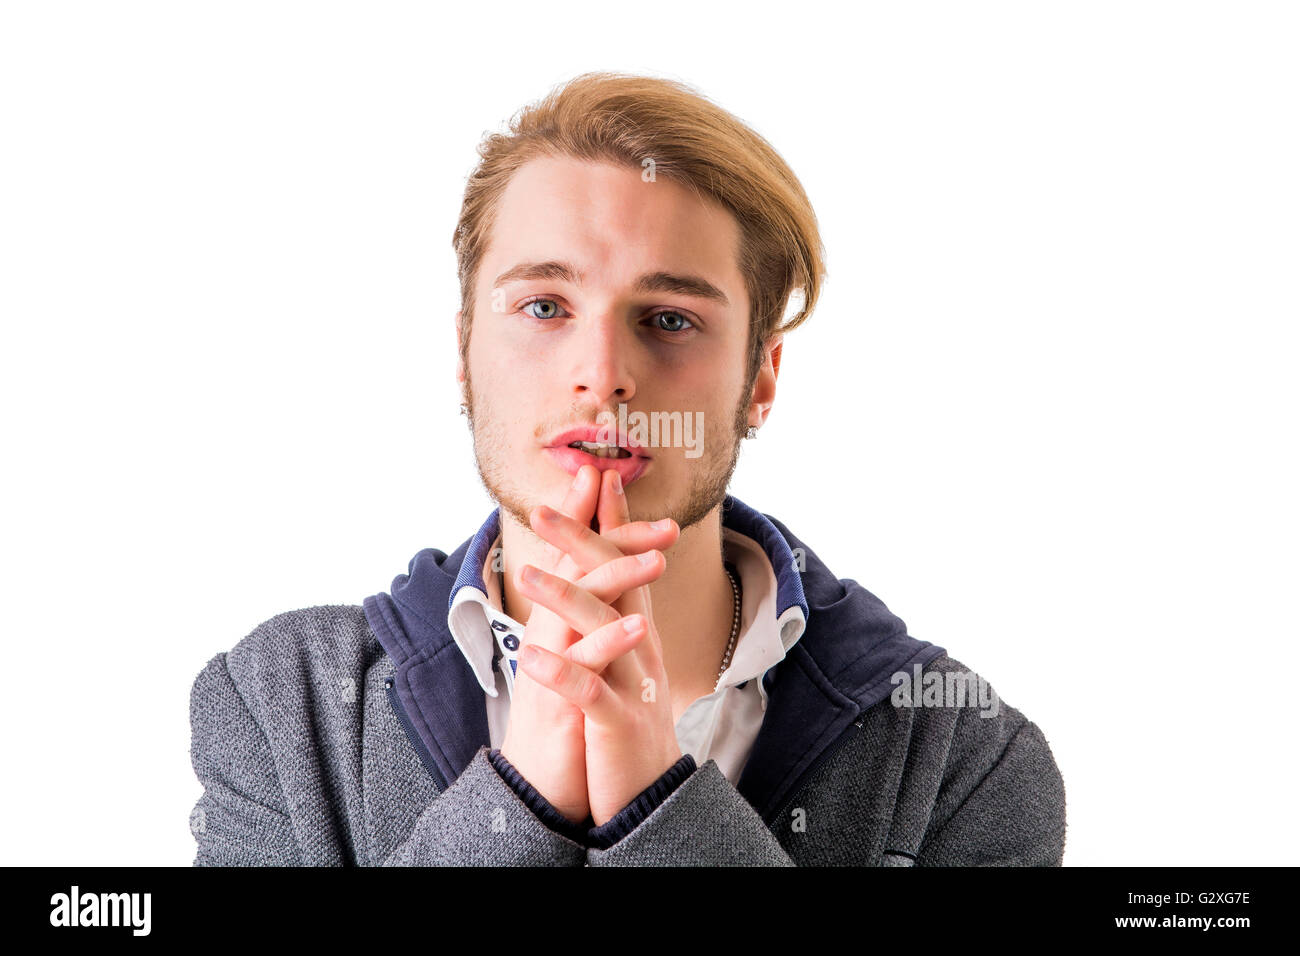 Needy, desperate young man pleading with hands joined as if praying to camera, isolated - Stock Image